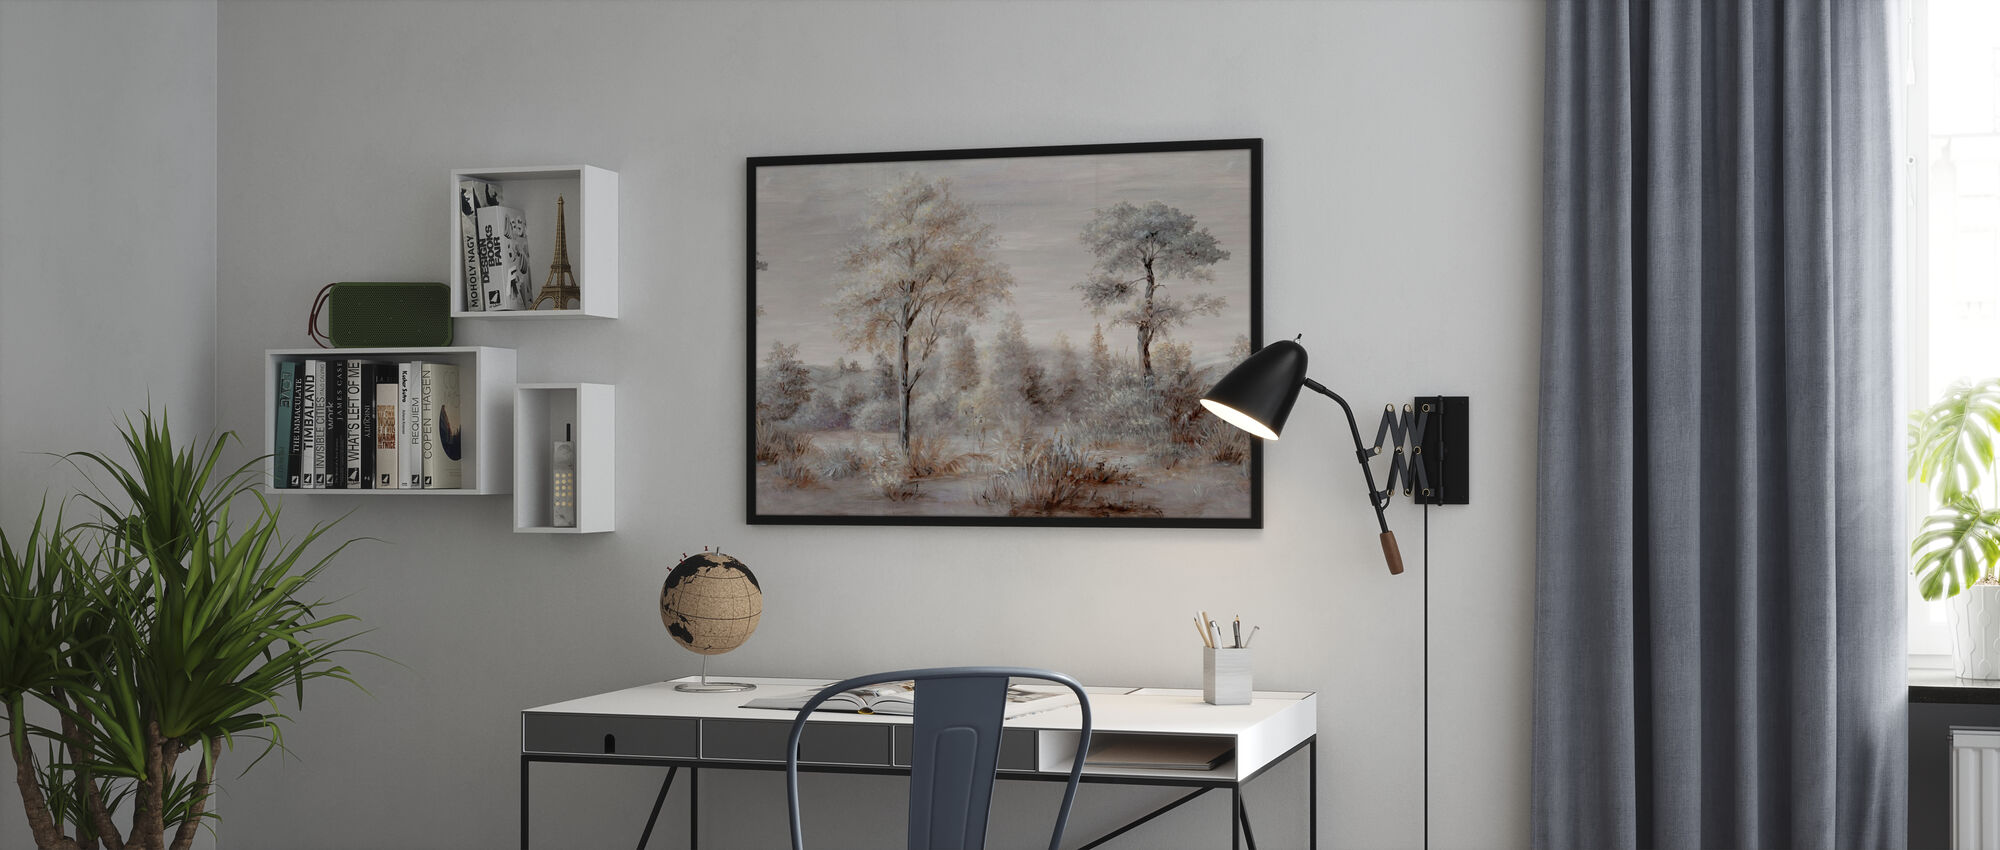 Expressive View - Poster - Office